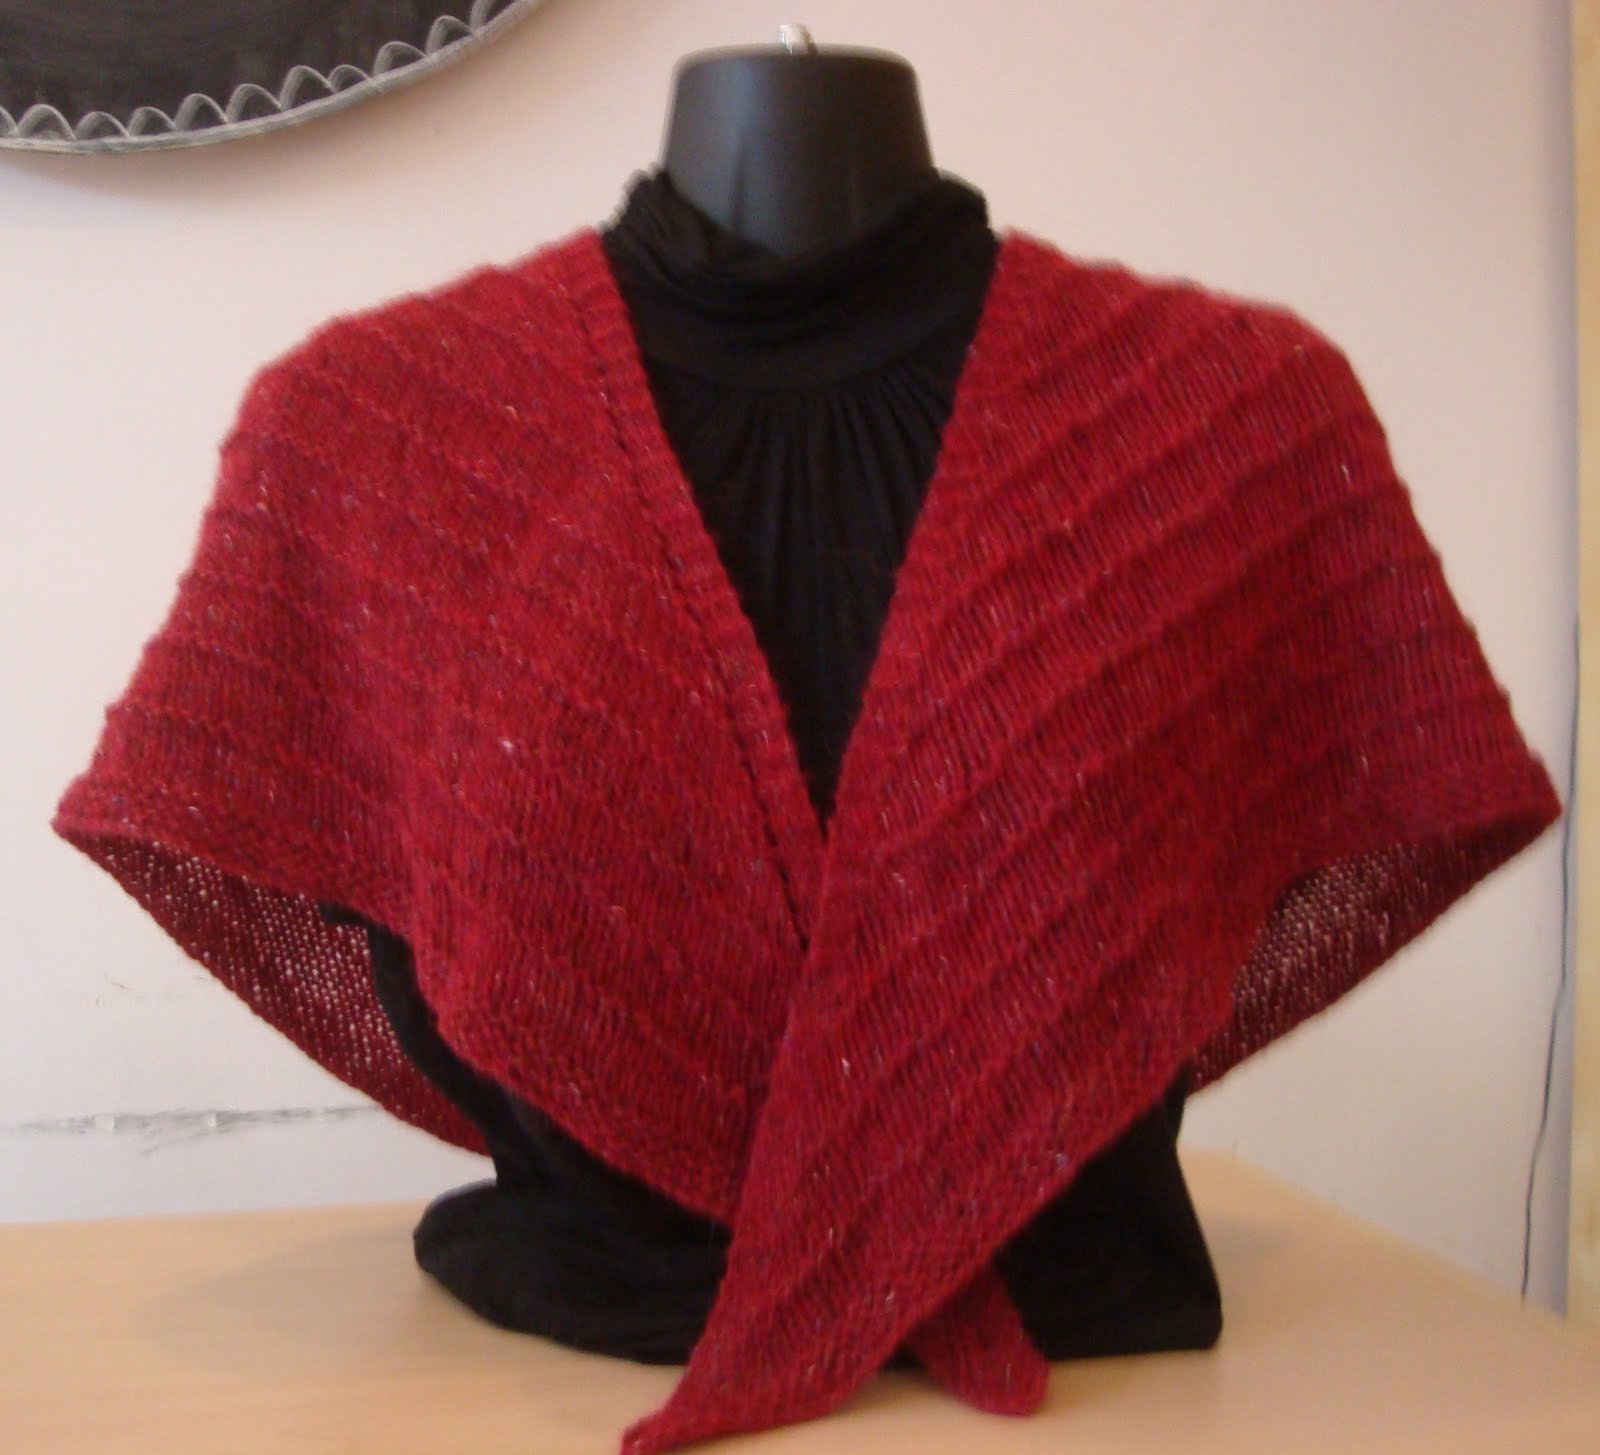 Easy Lace Shawl Knitting Pattern Favecraftscom LONG HAIRSTYLES